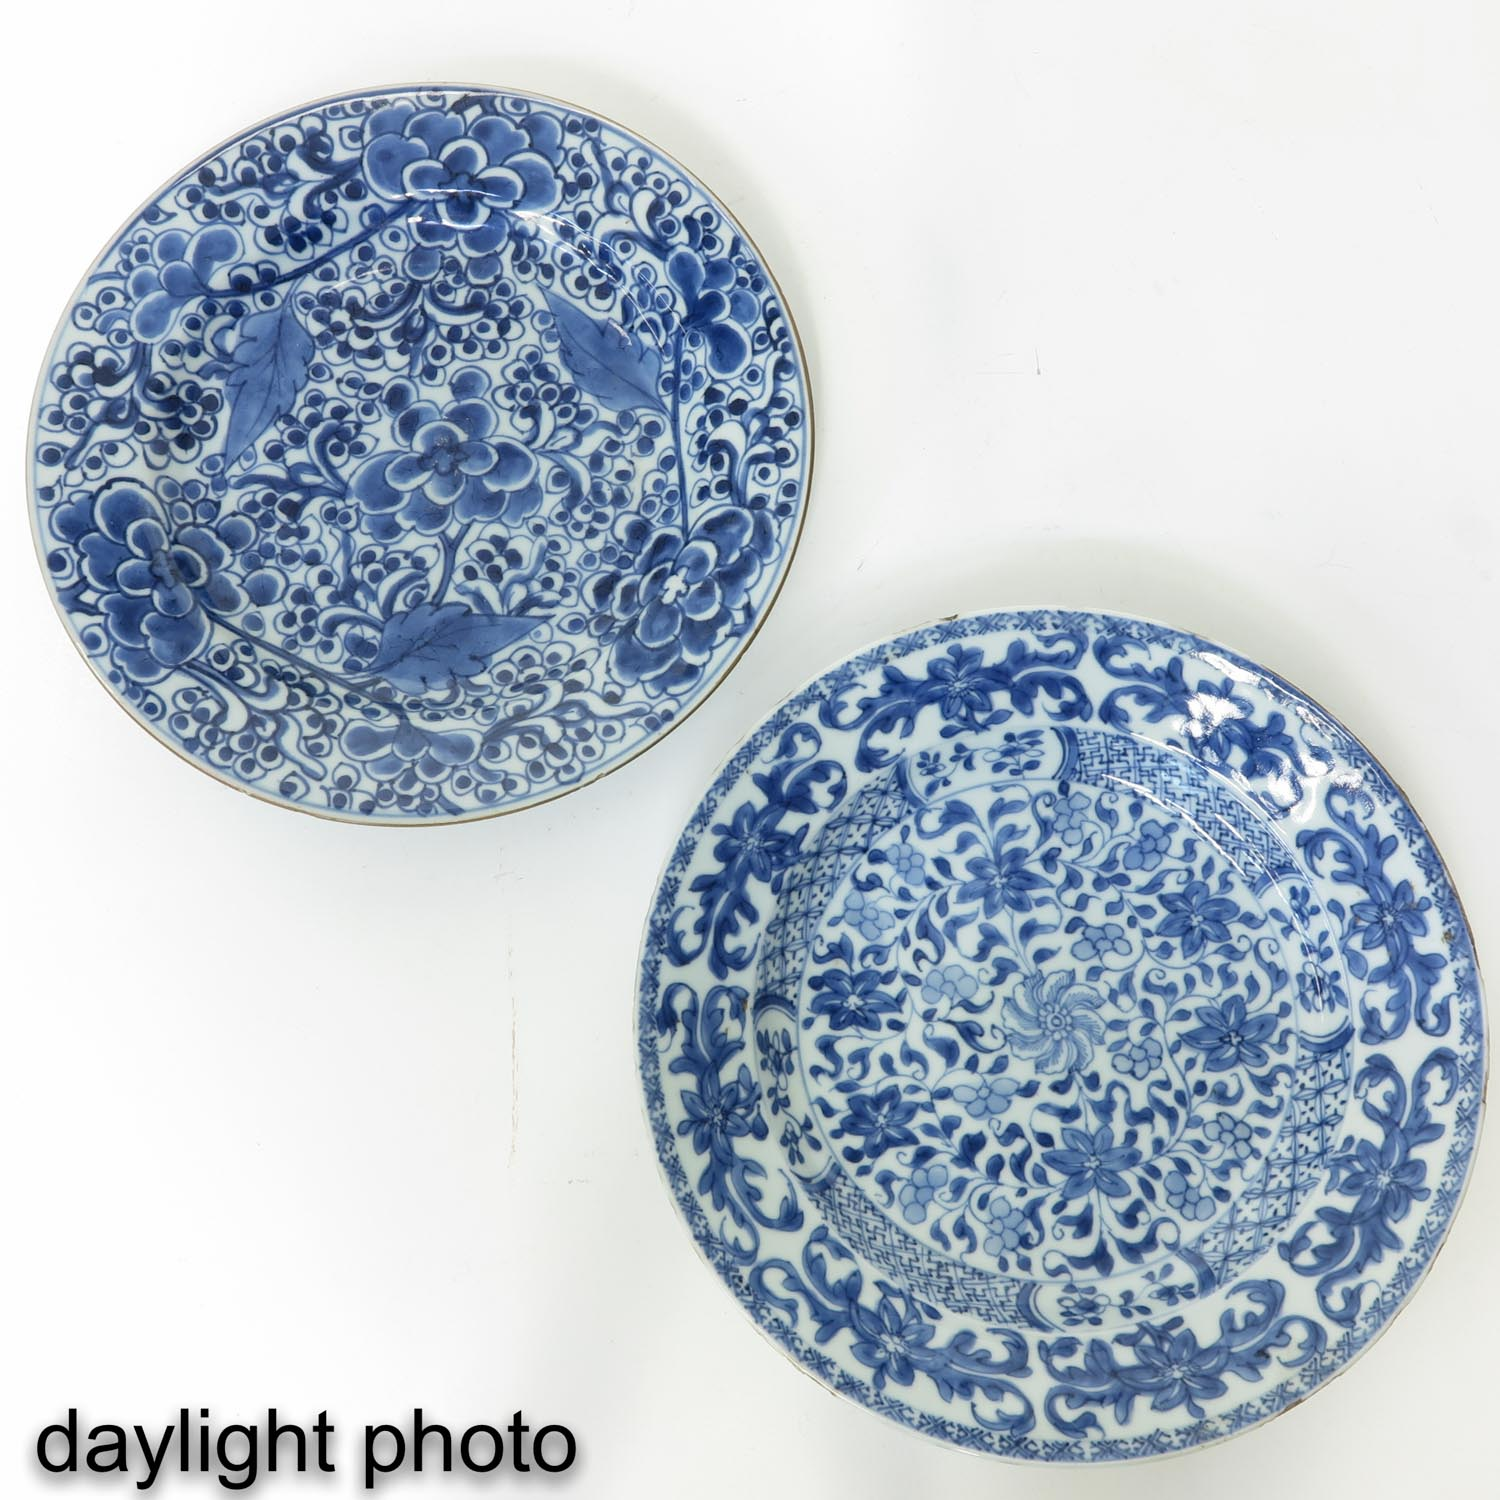 A Series of 5 Blue and White Plates - Image 7 of 10